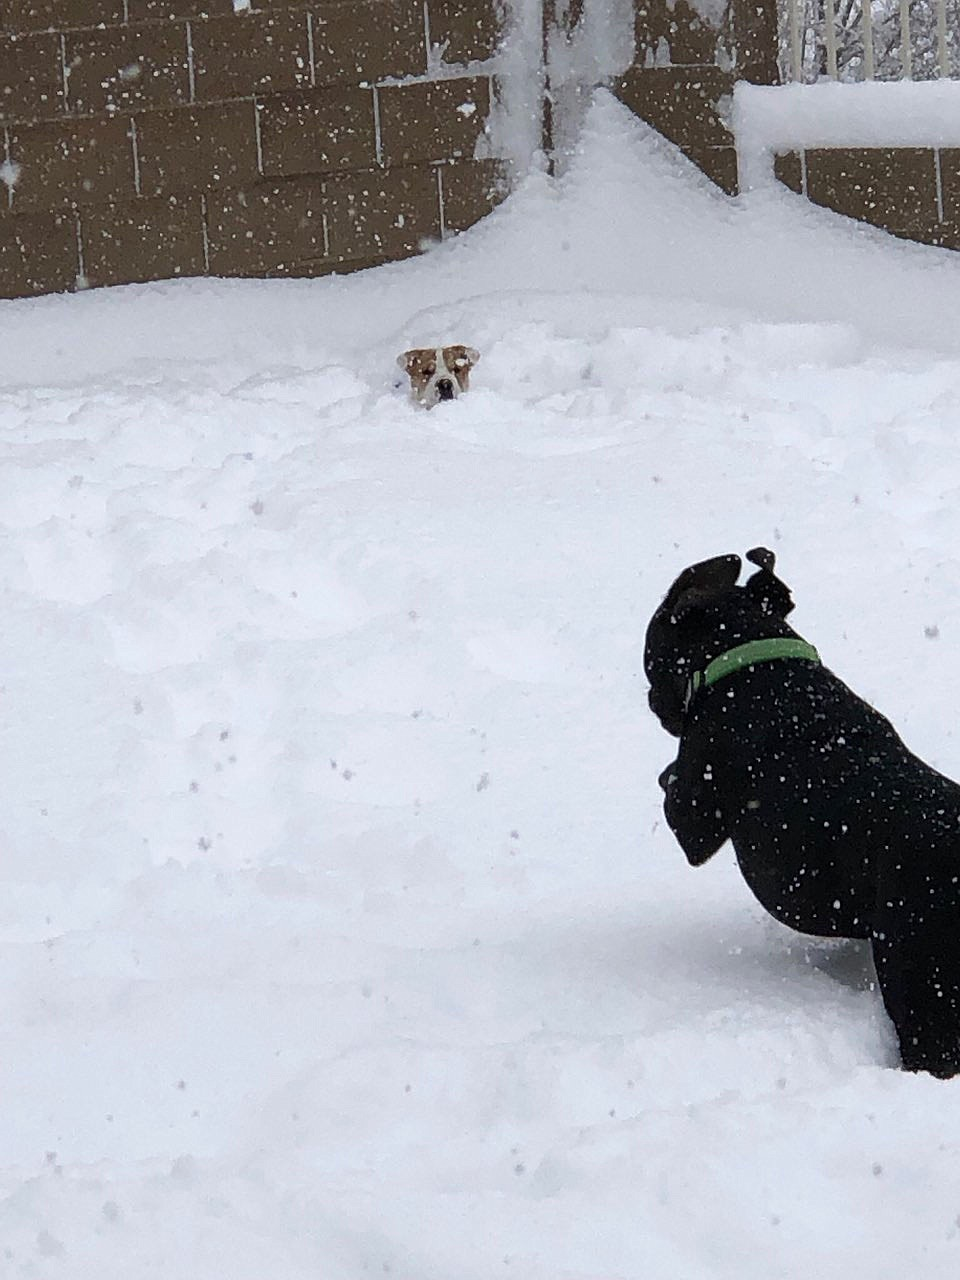 Sophie loving her first time in the snow, waiting for her brother Kevin to pounce! (Alexandra Suzanne)